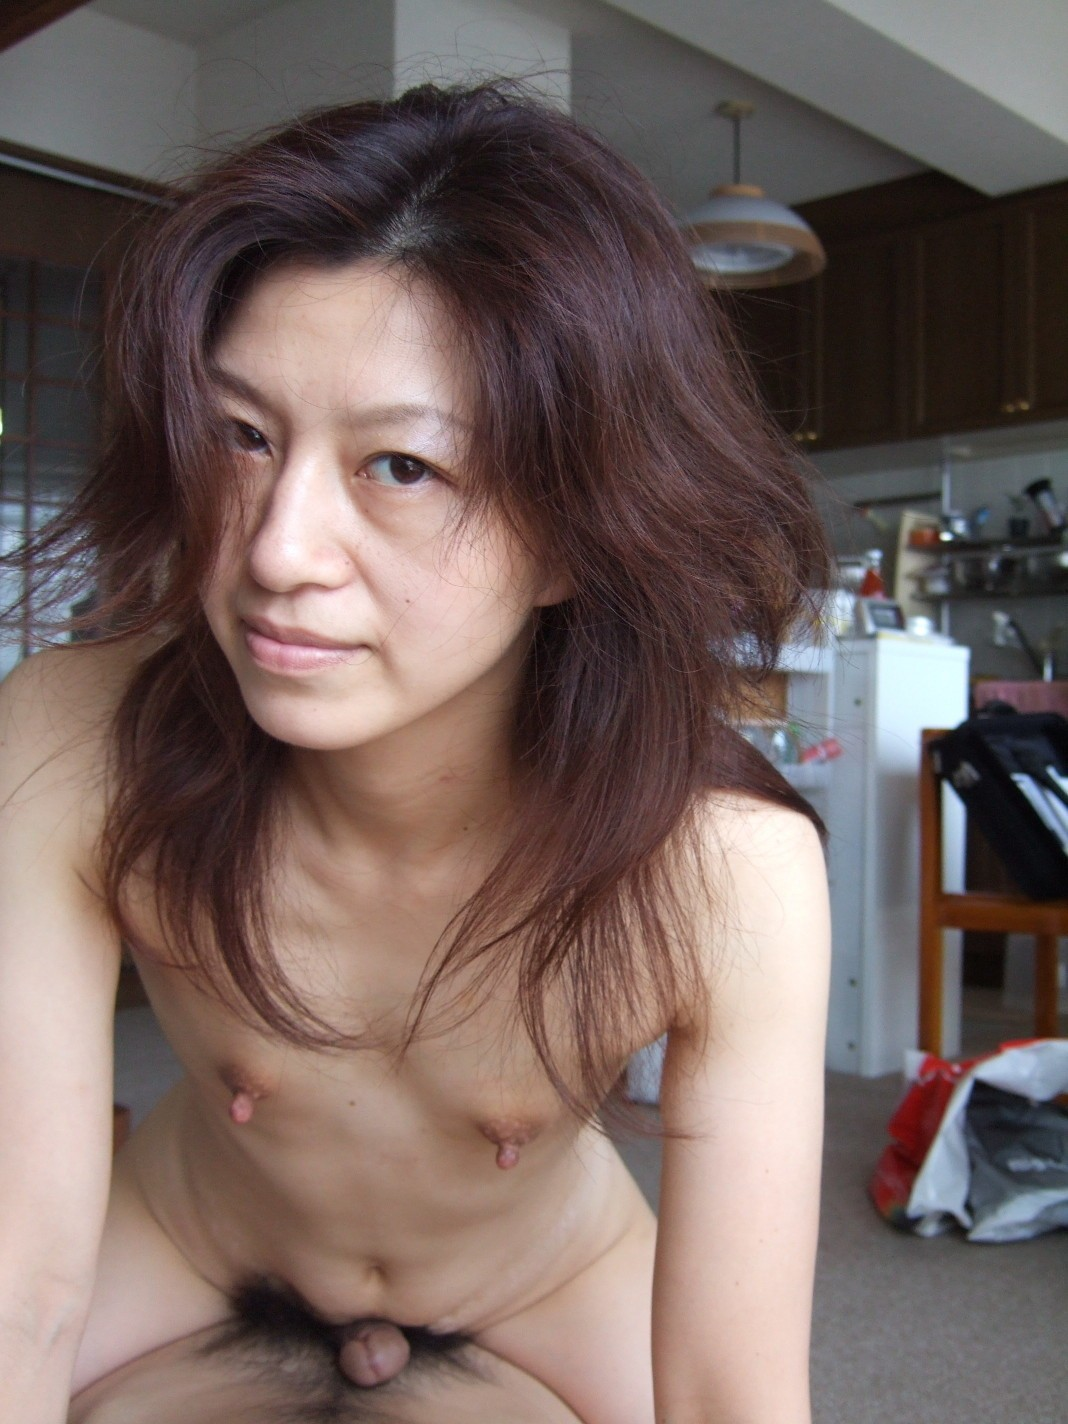 tiny tits on asian whore - motherless